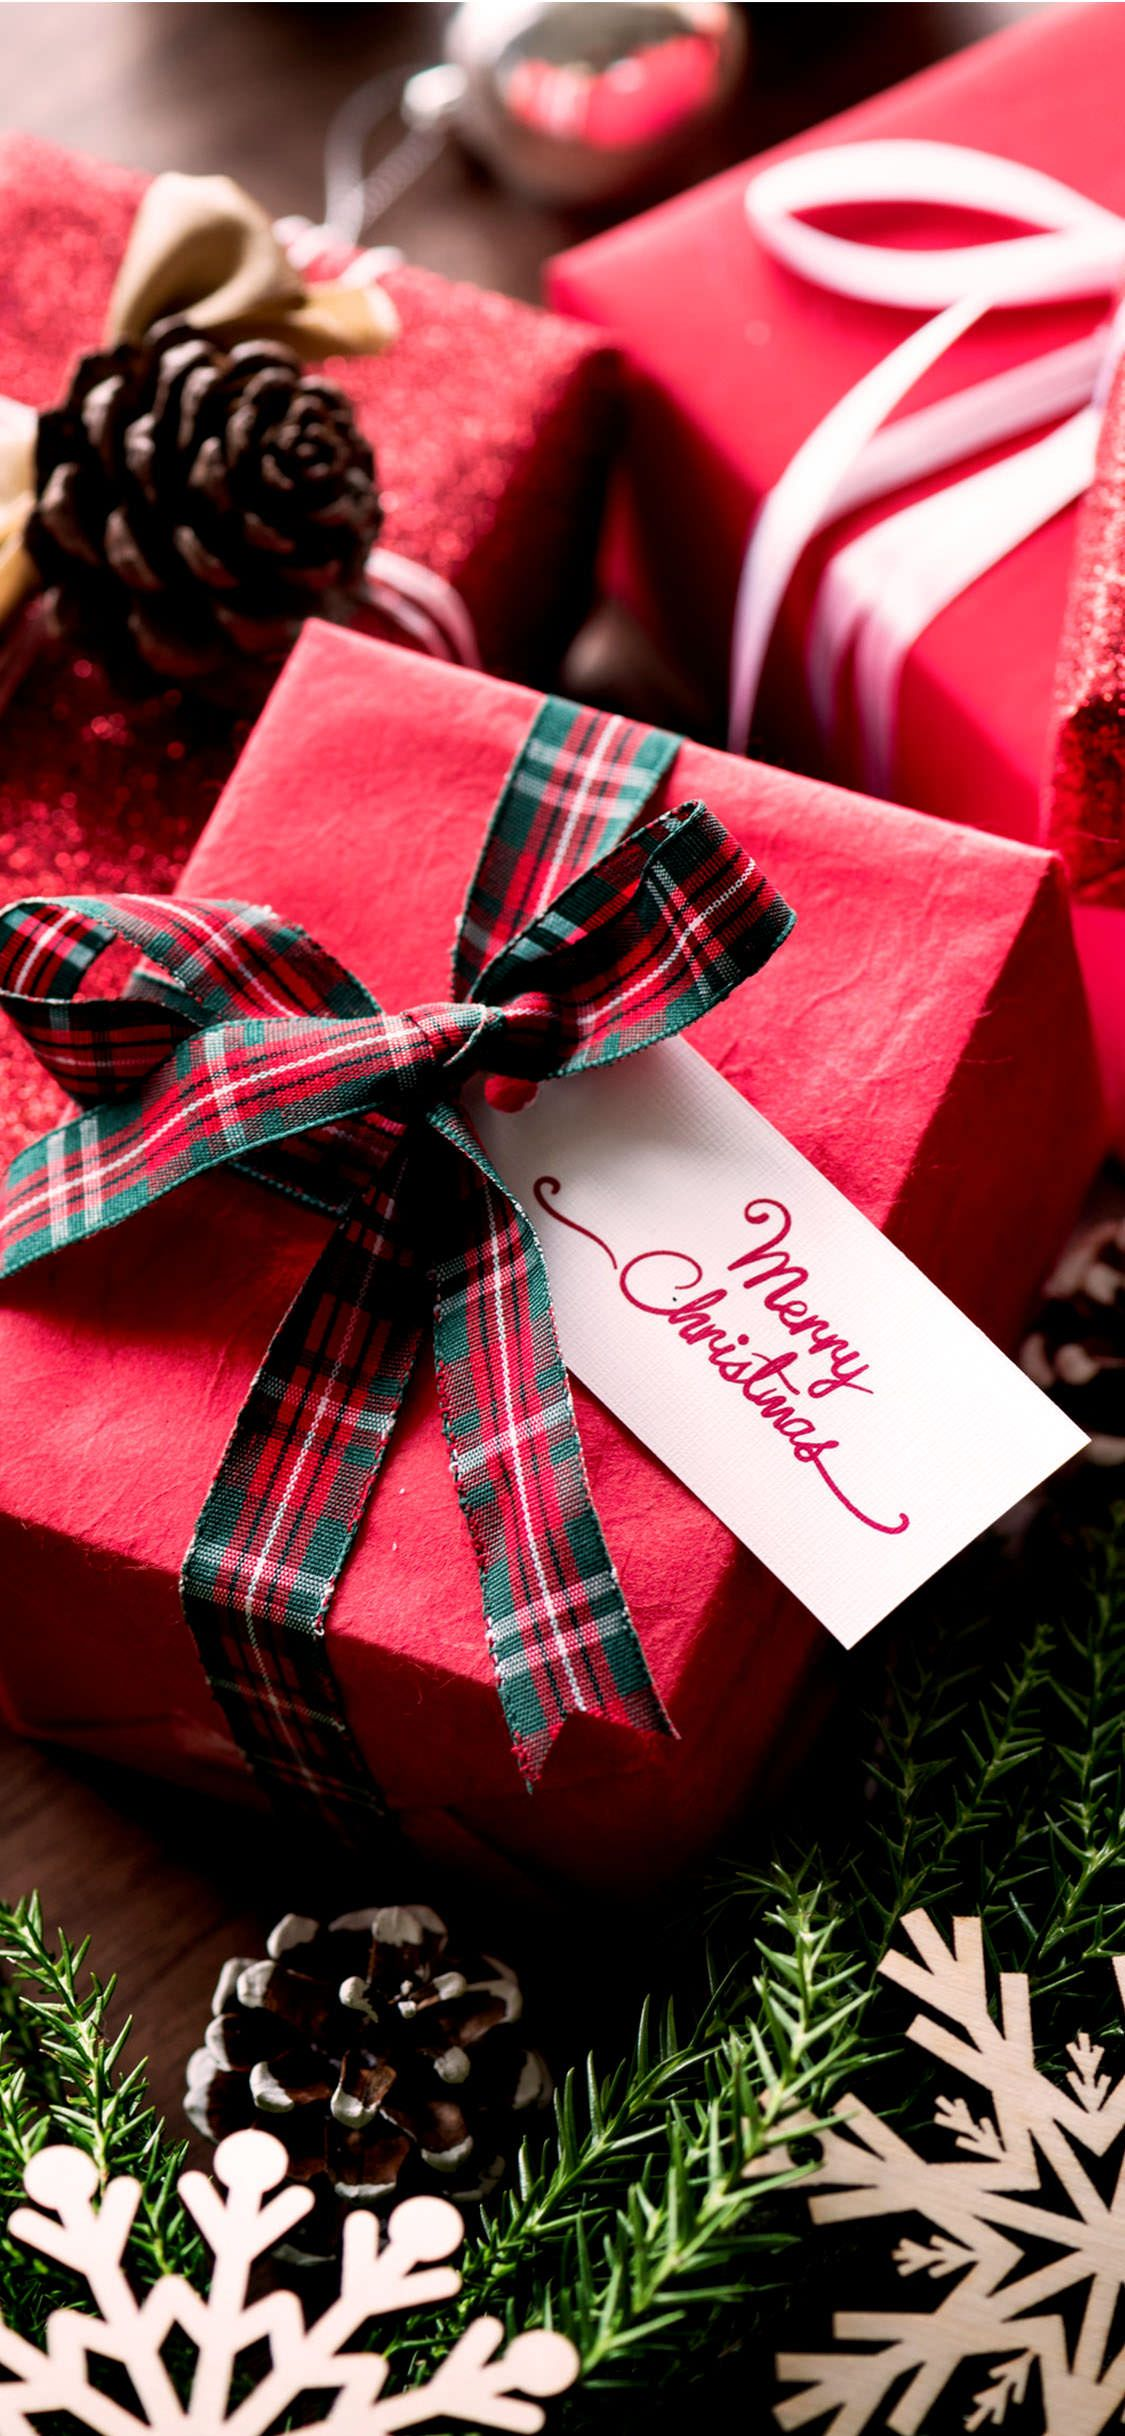 1125 2436 Merry Christmas Gift Box Iphone X Hd Wallpapers Diy Christmas Gifts Fun Holiday Gift Exchange Christmas Note